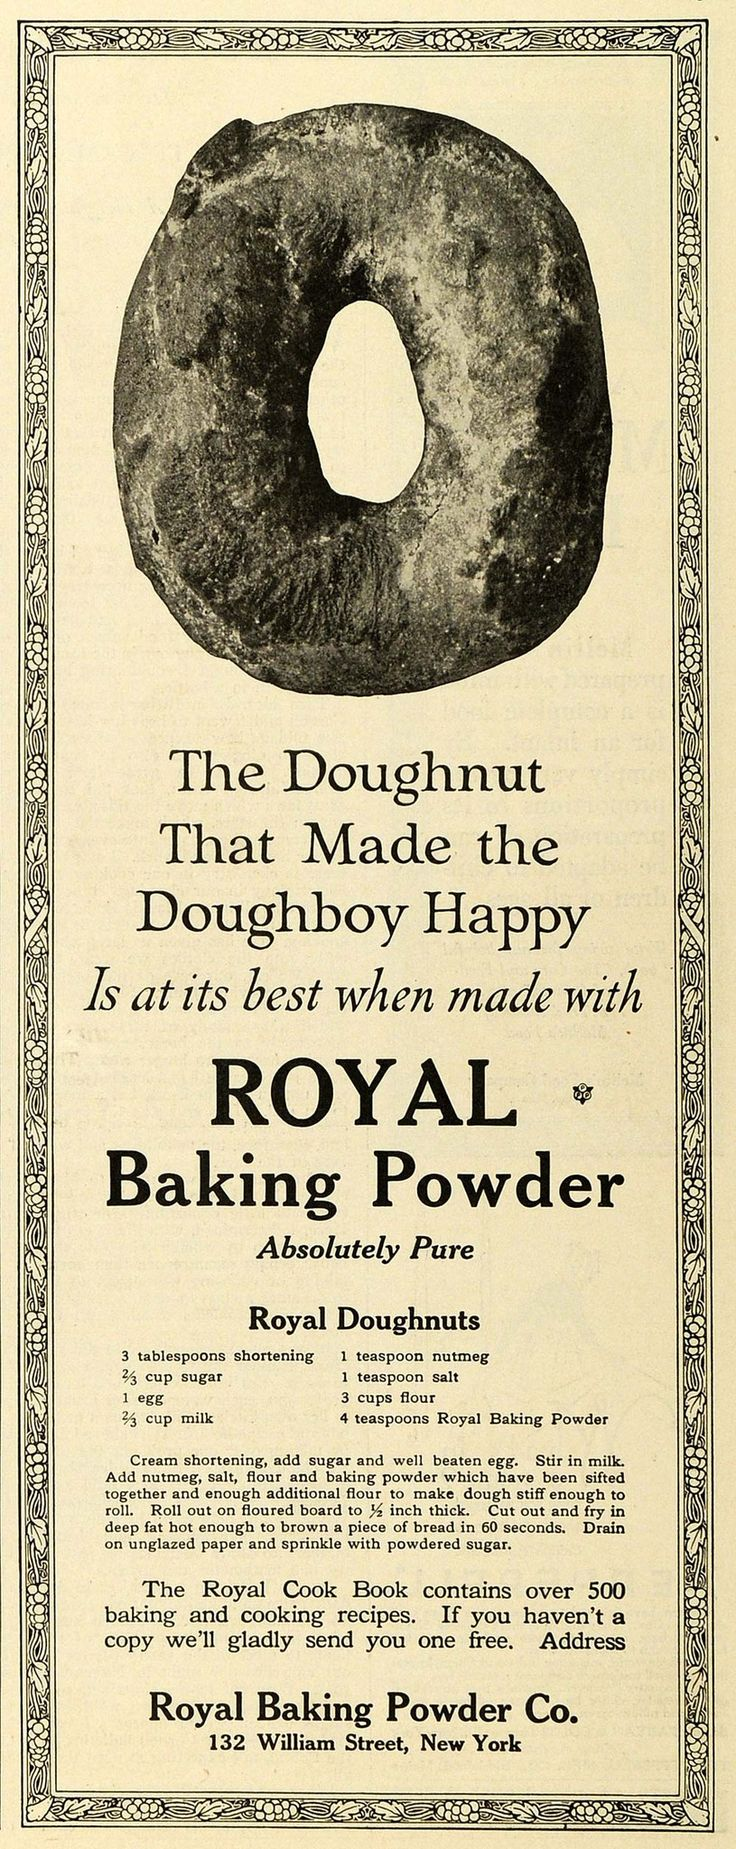 Royal Baking Powder, 1919